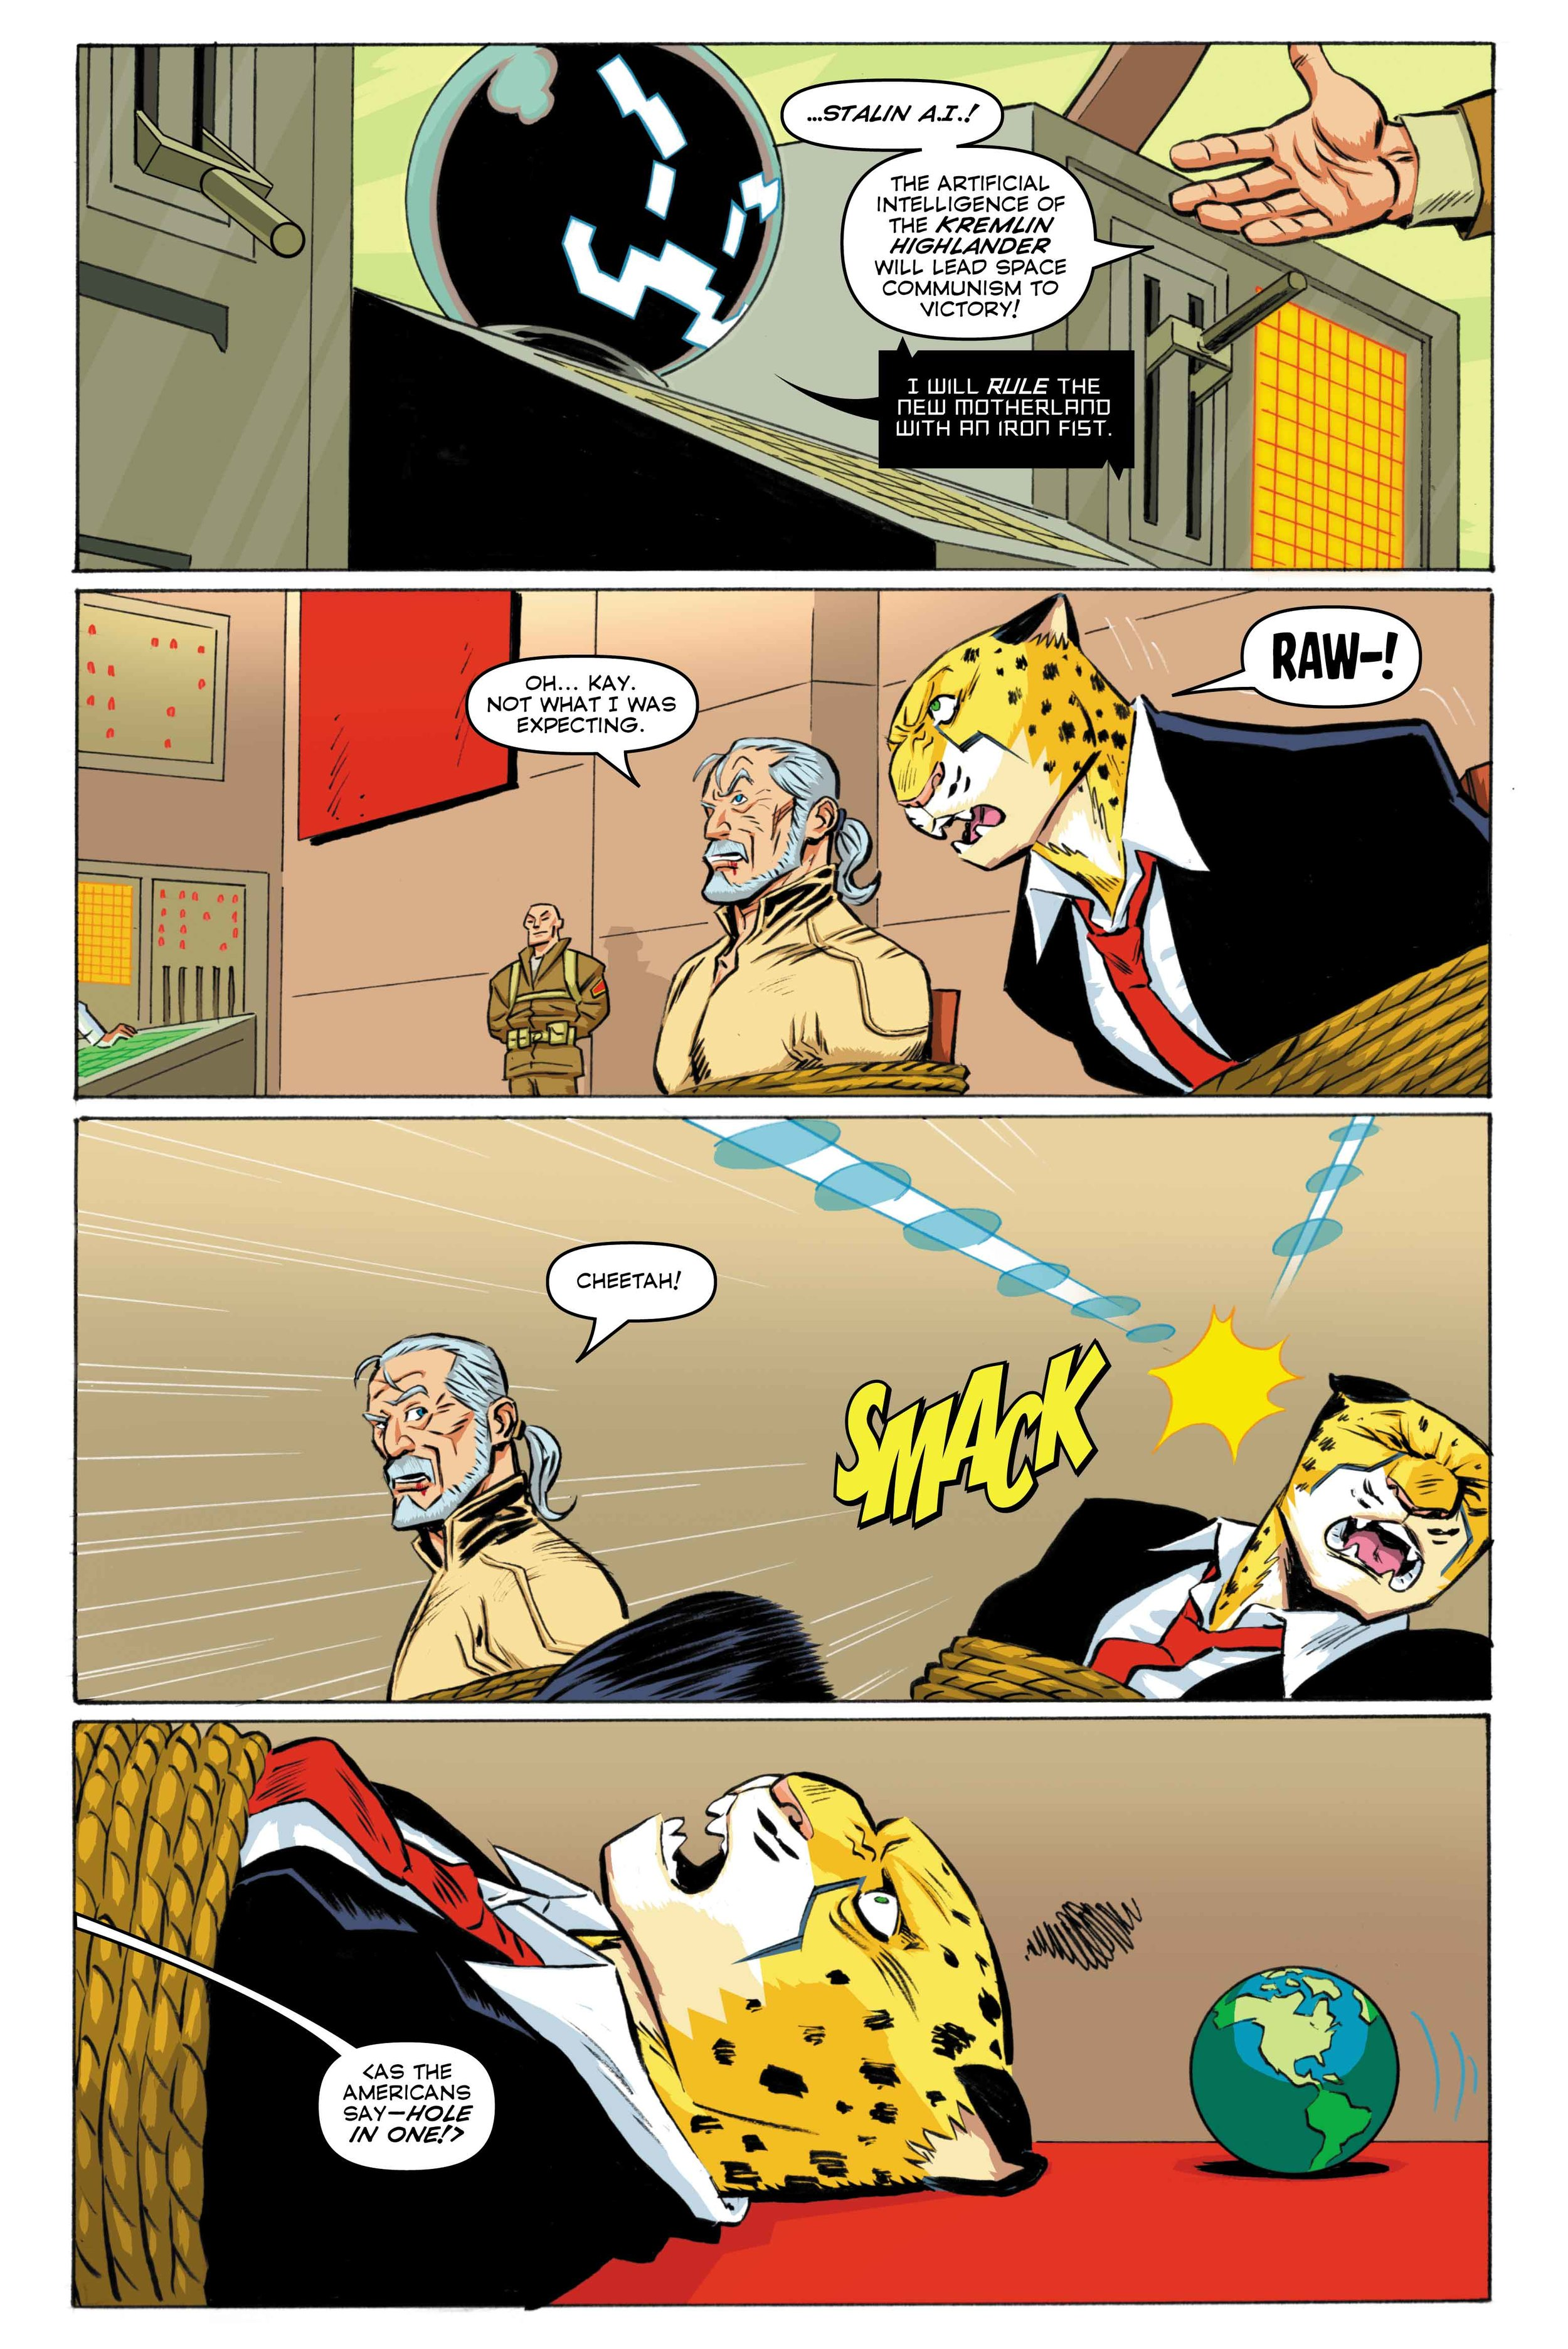 Time Cheetah - The Secret of Stalin Island Part 2 - Page 06